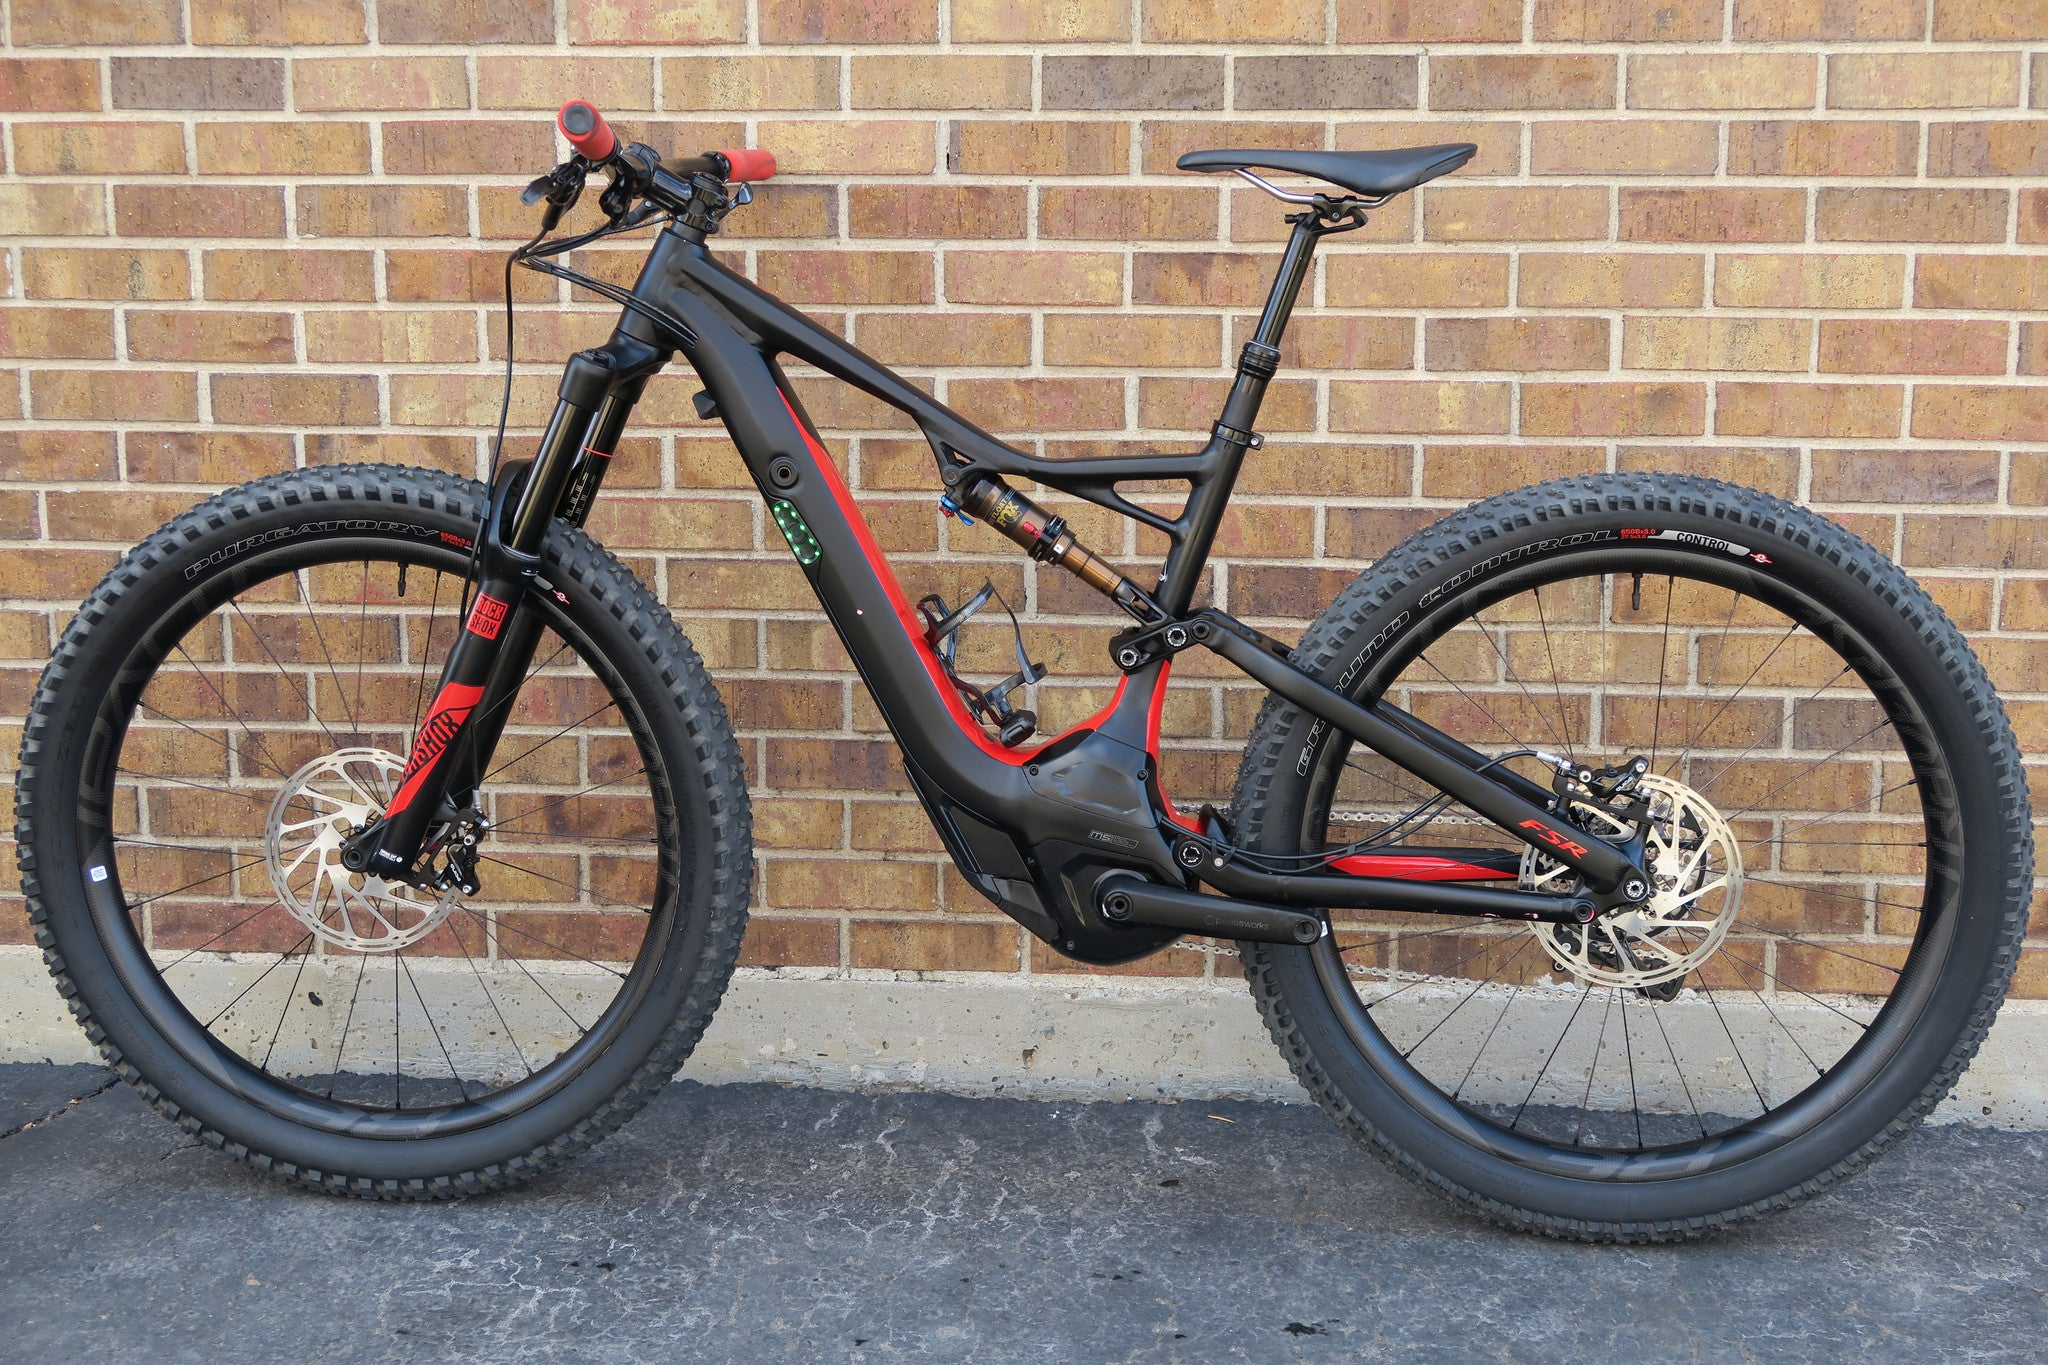 2017 S-WORKS TURBO LEVO FSR 6FATTIE SPECIALIZED ELECTRIC PEDAL ASSIST 27.5+